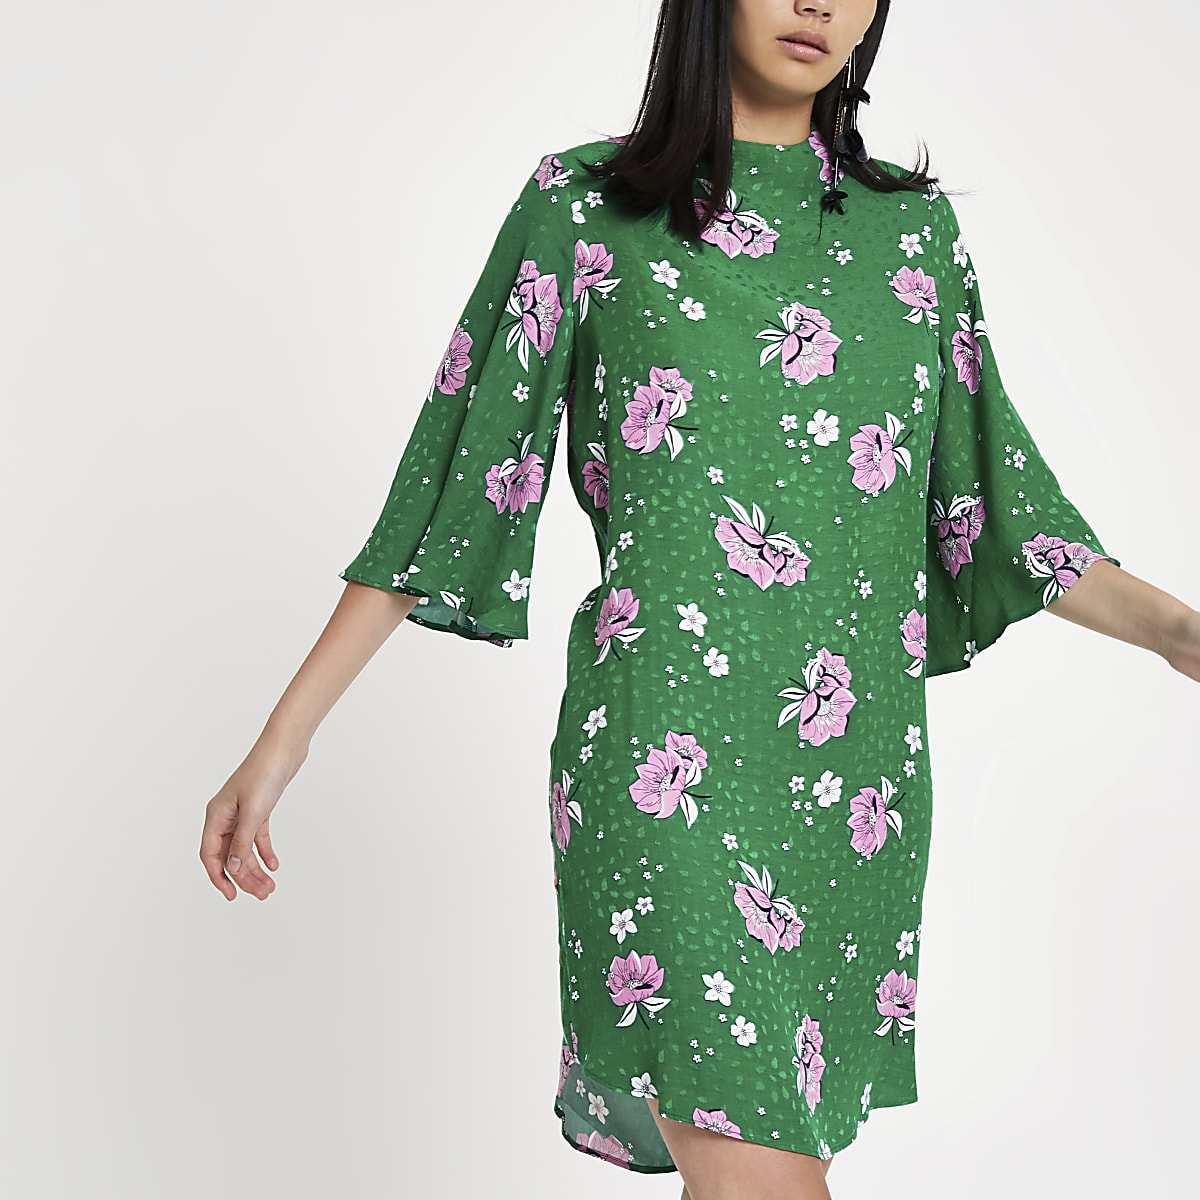 Green floral high neck swing dress